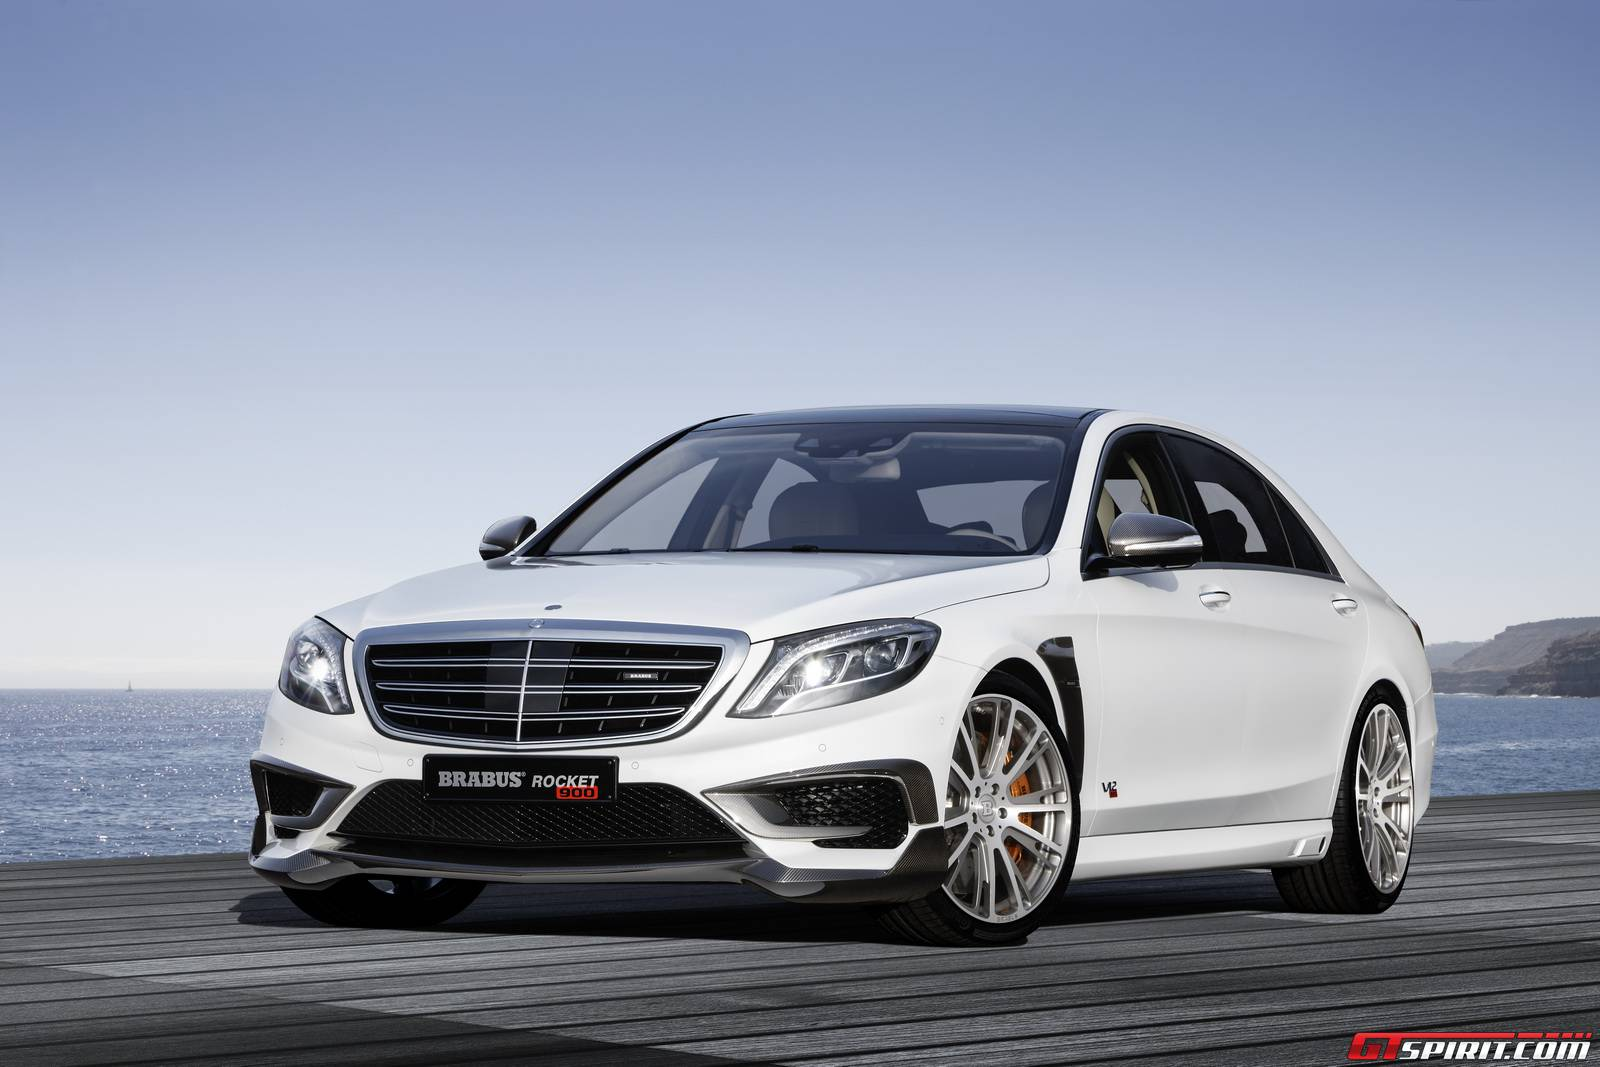 Brabus rocket photo - 2